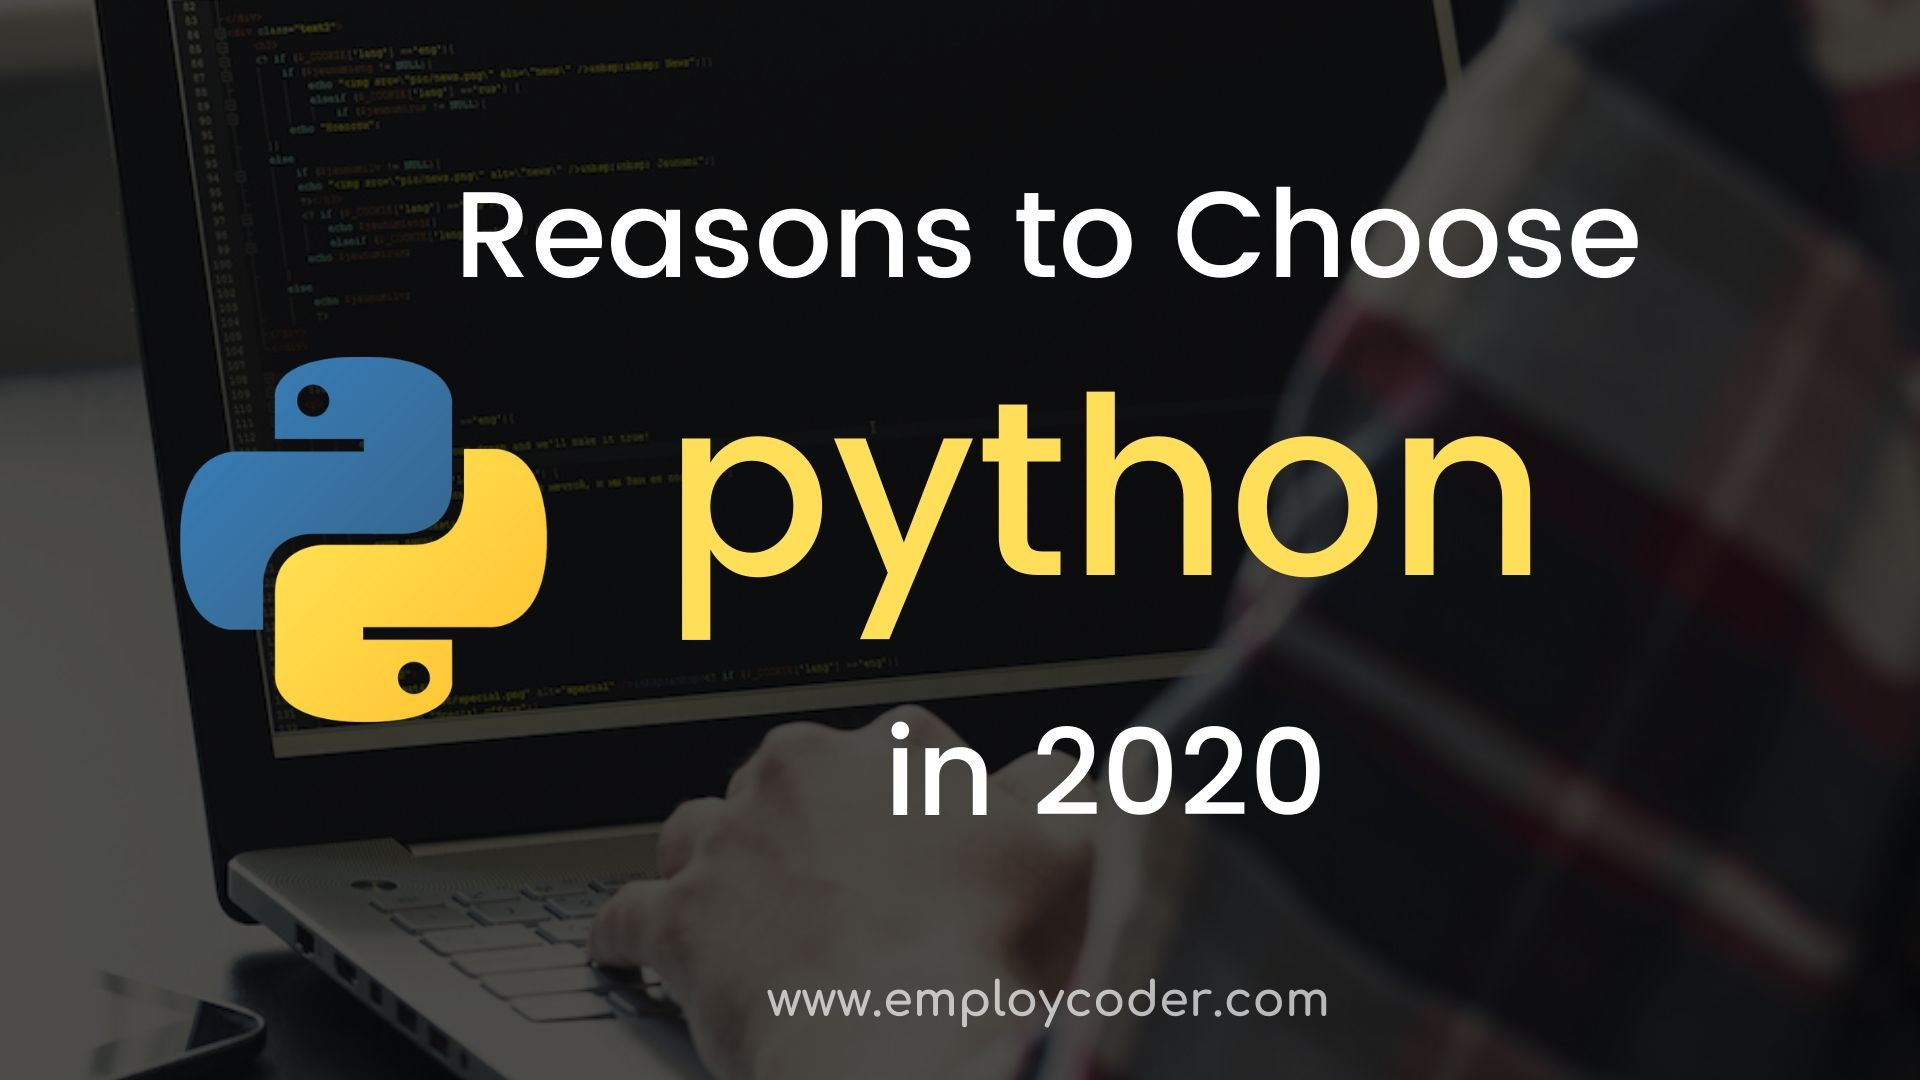 Reasons to Choose Python in 2020